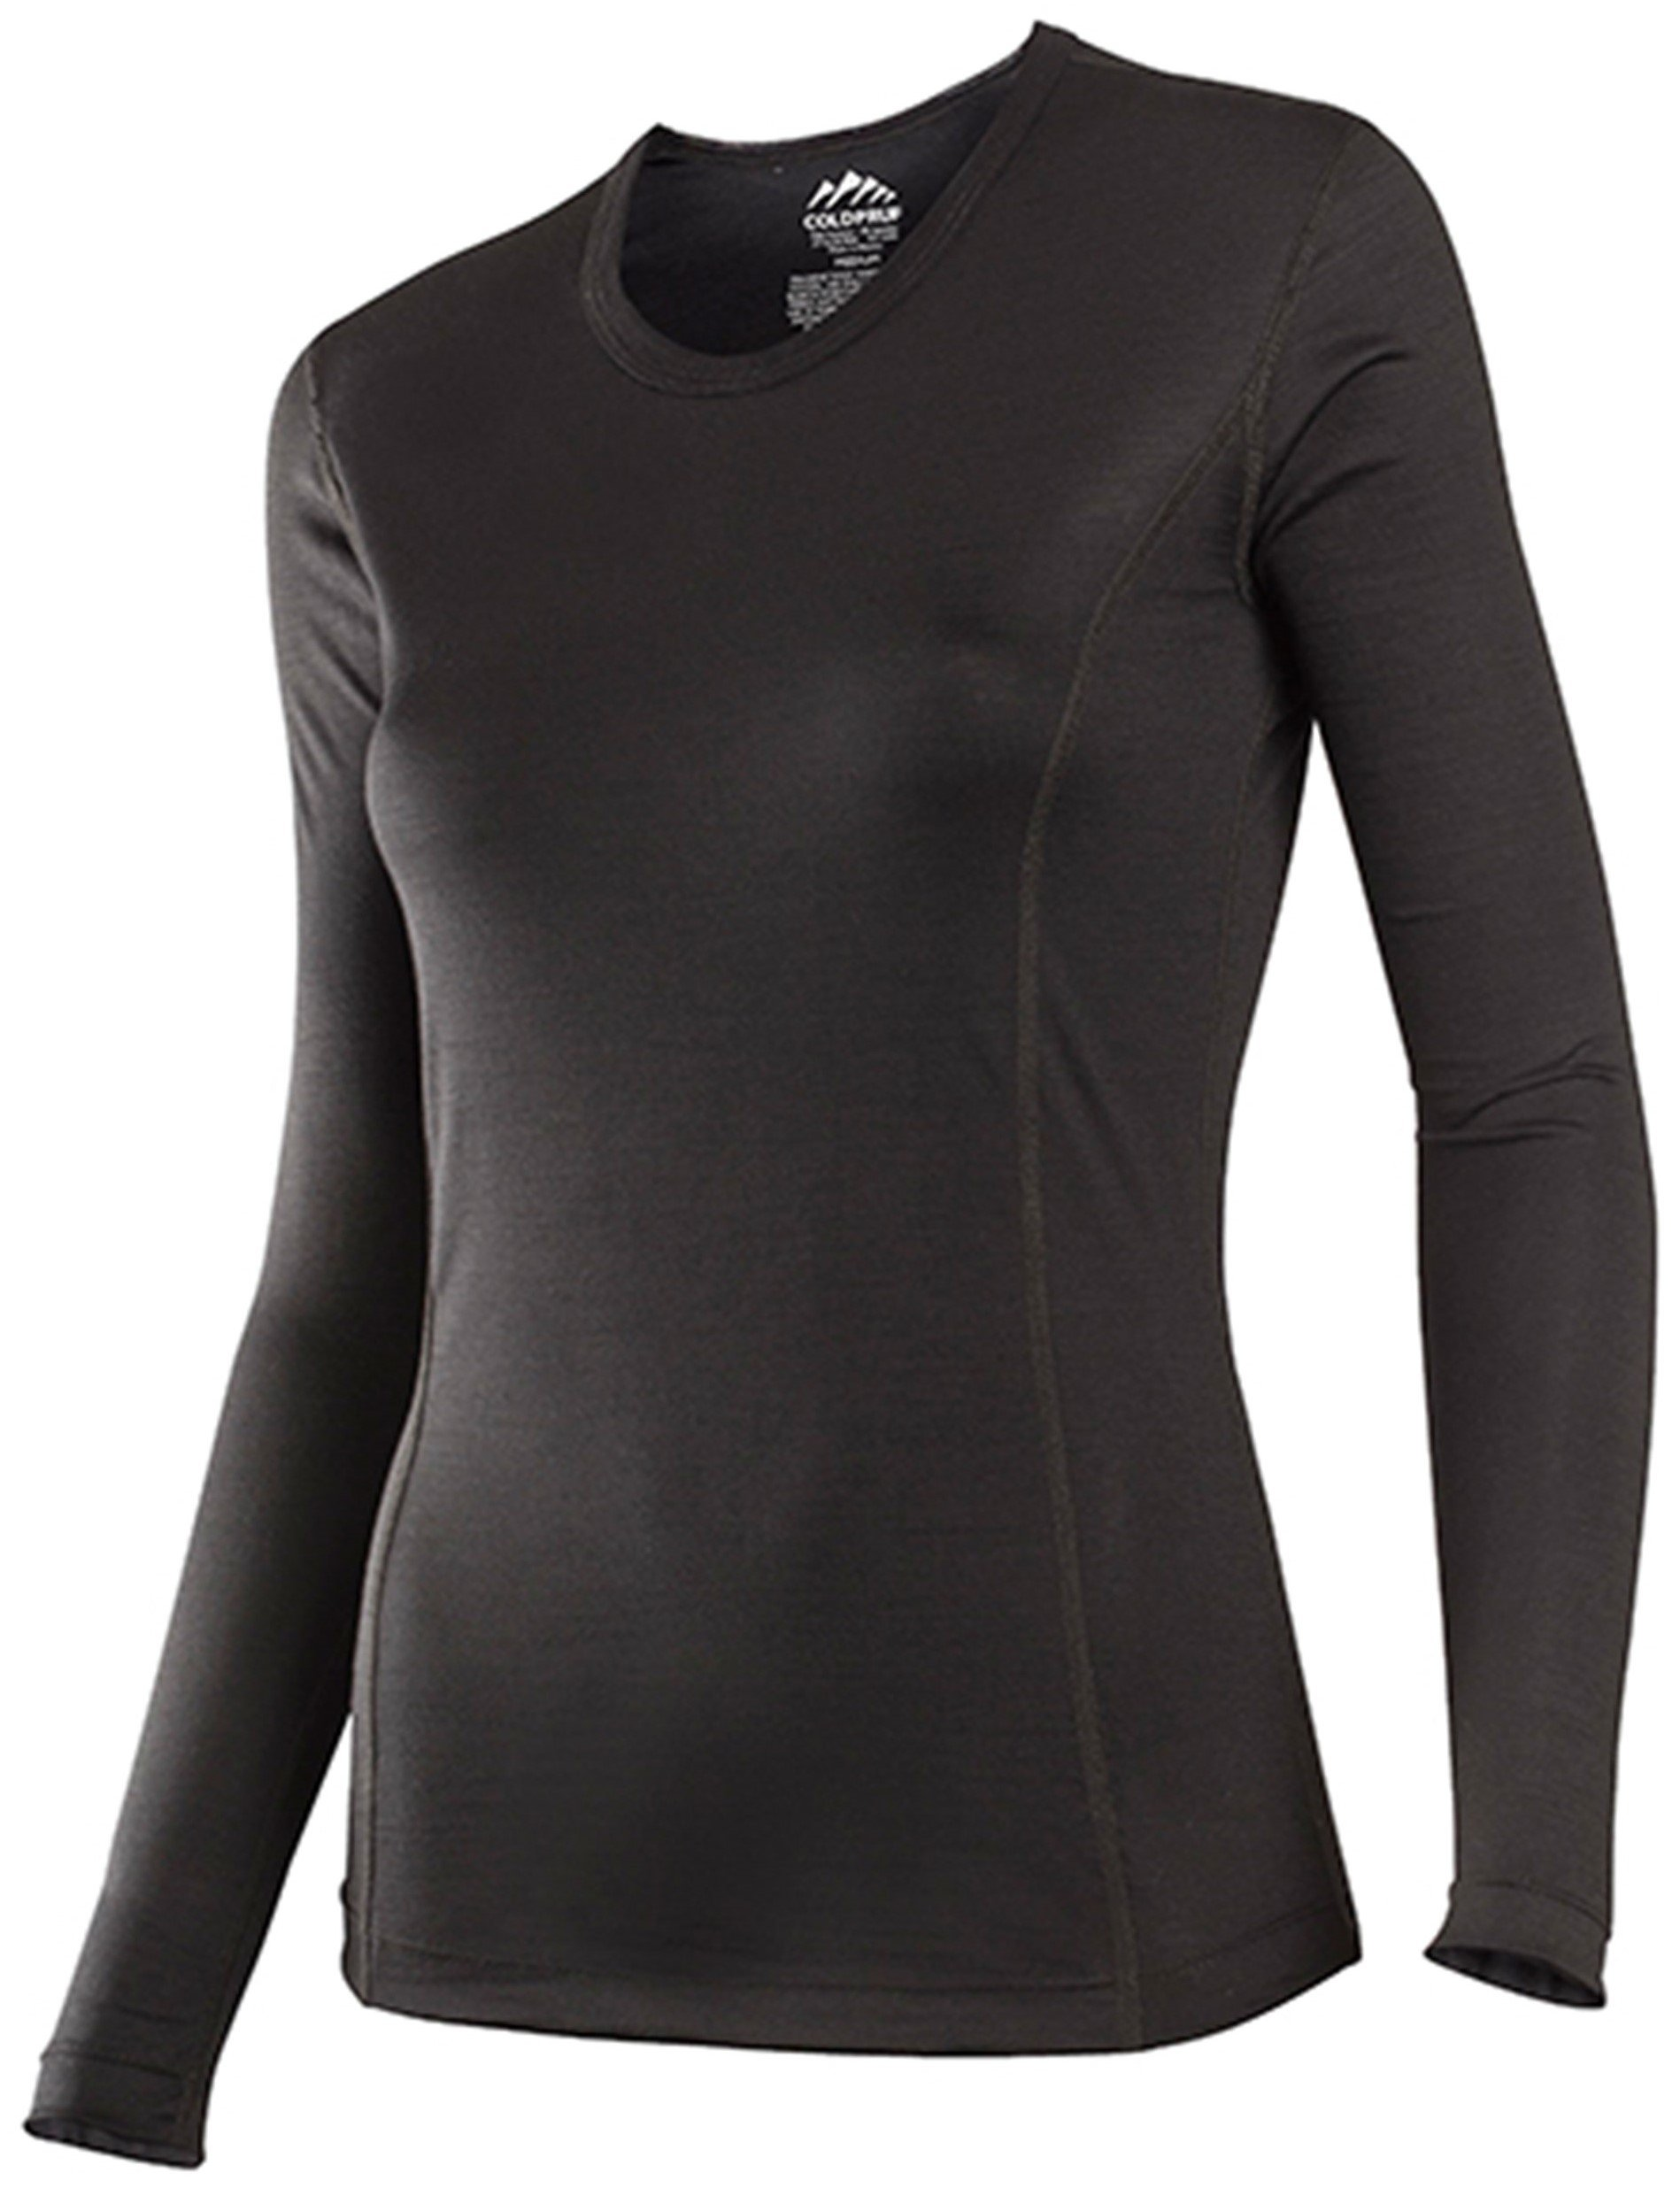 ColdPruf Women's Classic Base Layer Long Sleeve Crew Neck Top, Black, XX-Large